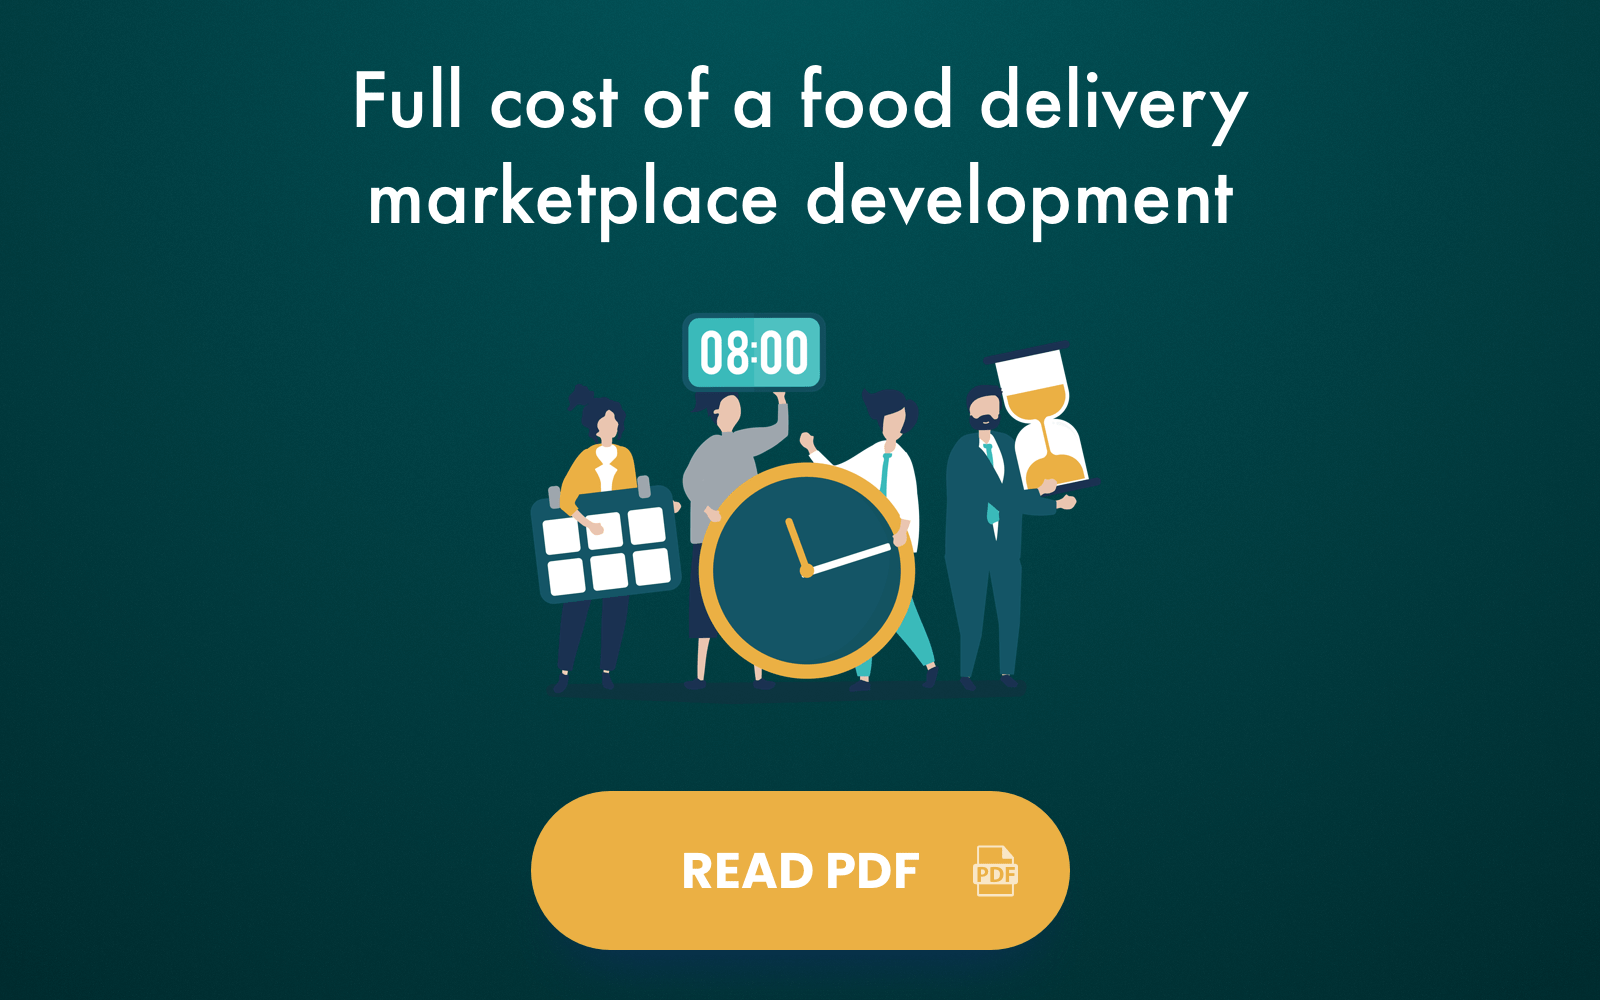 Full cost of a food delivery marketplace development